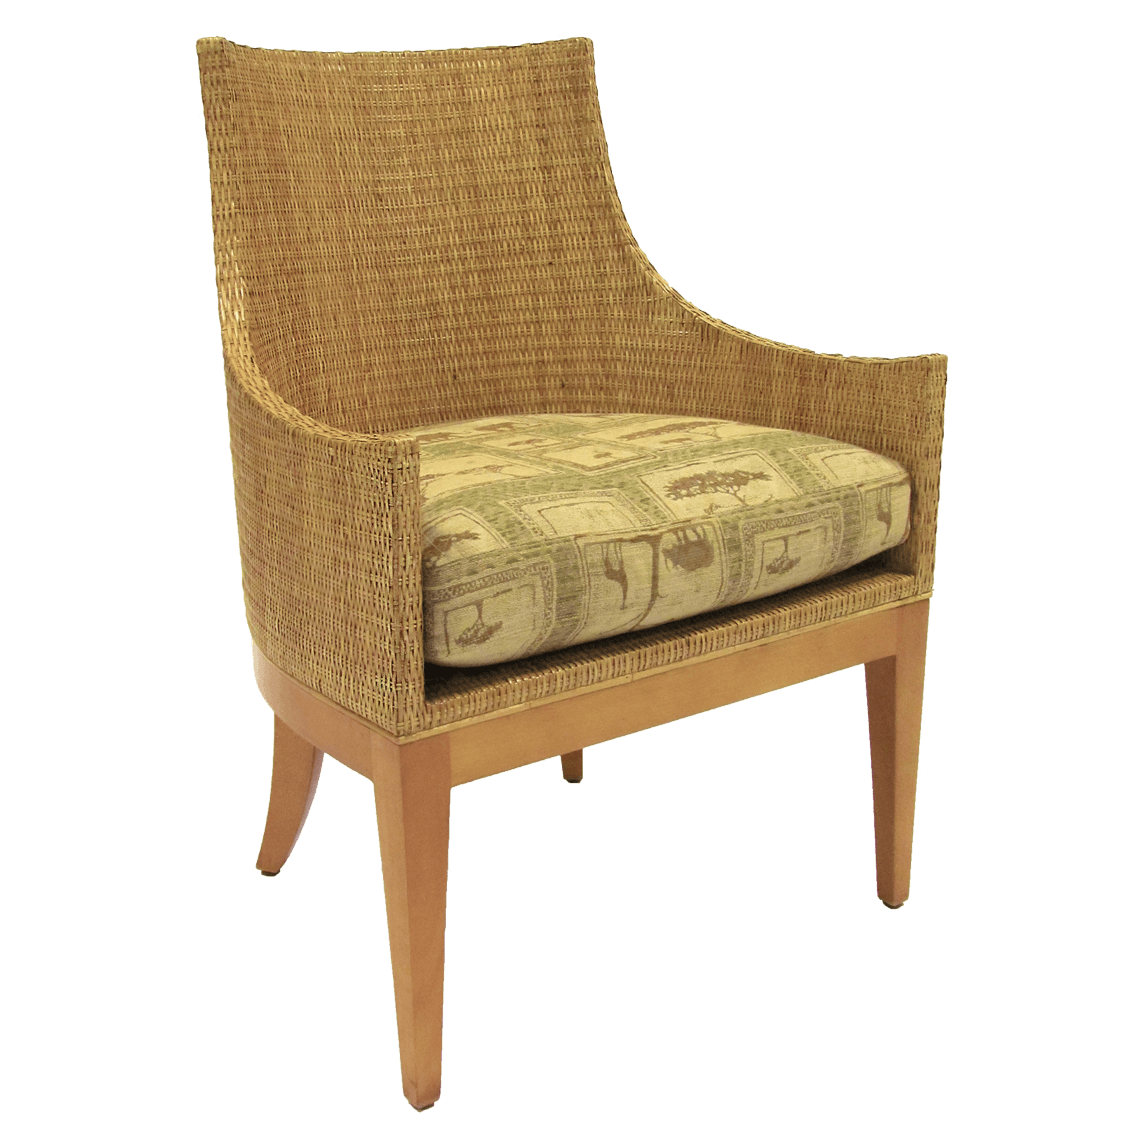 McGuire. ORLANDO DIAZ AZCUY UMBRIA ARM CHAIR